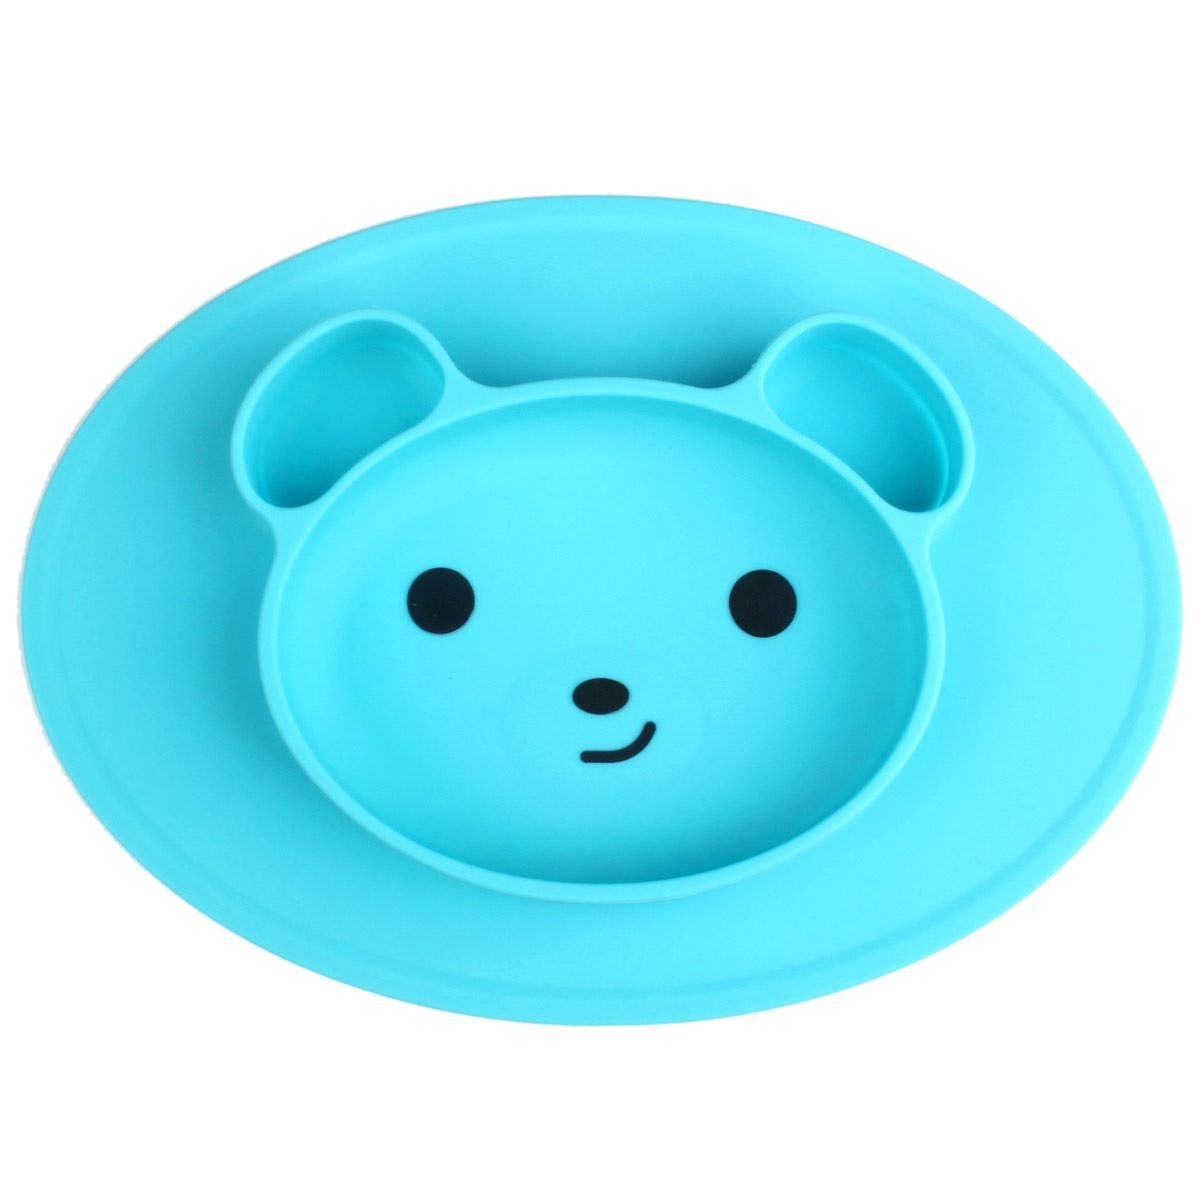 Baby Silicone Suction Placemat for Toddlers and Kids, Baby Portable Suction Plates BPA Free Bear Feeding Trays Dishwasher and Microwave Safe Fits Most High Chair Trays, Blue